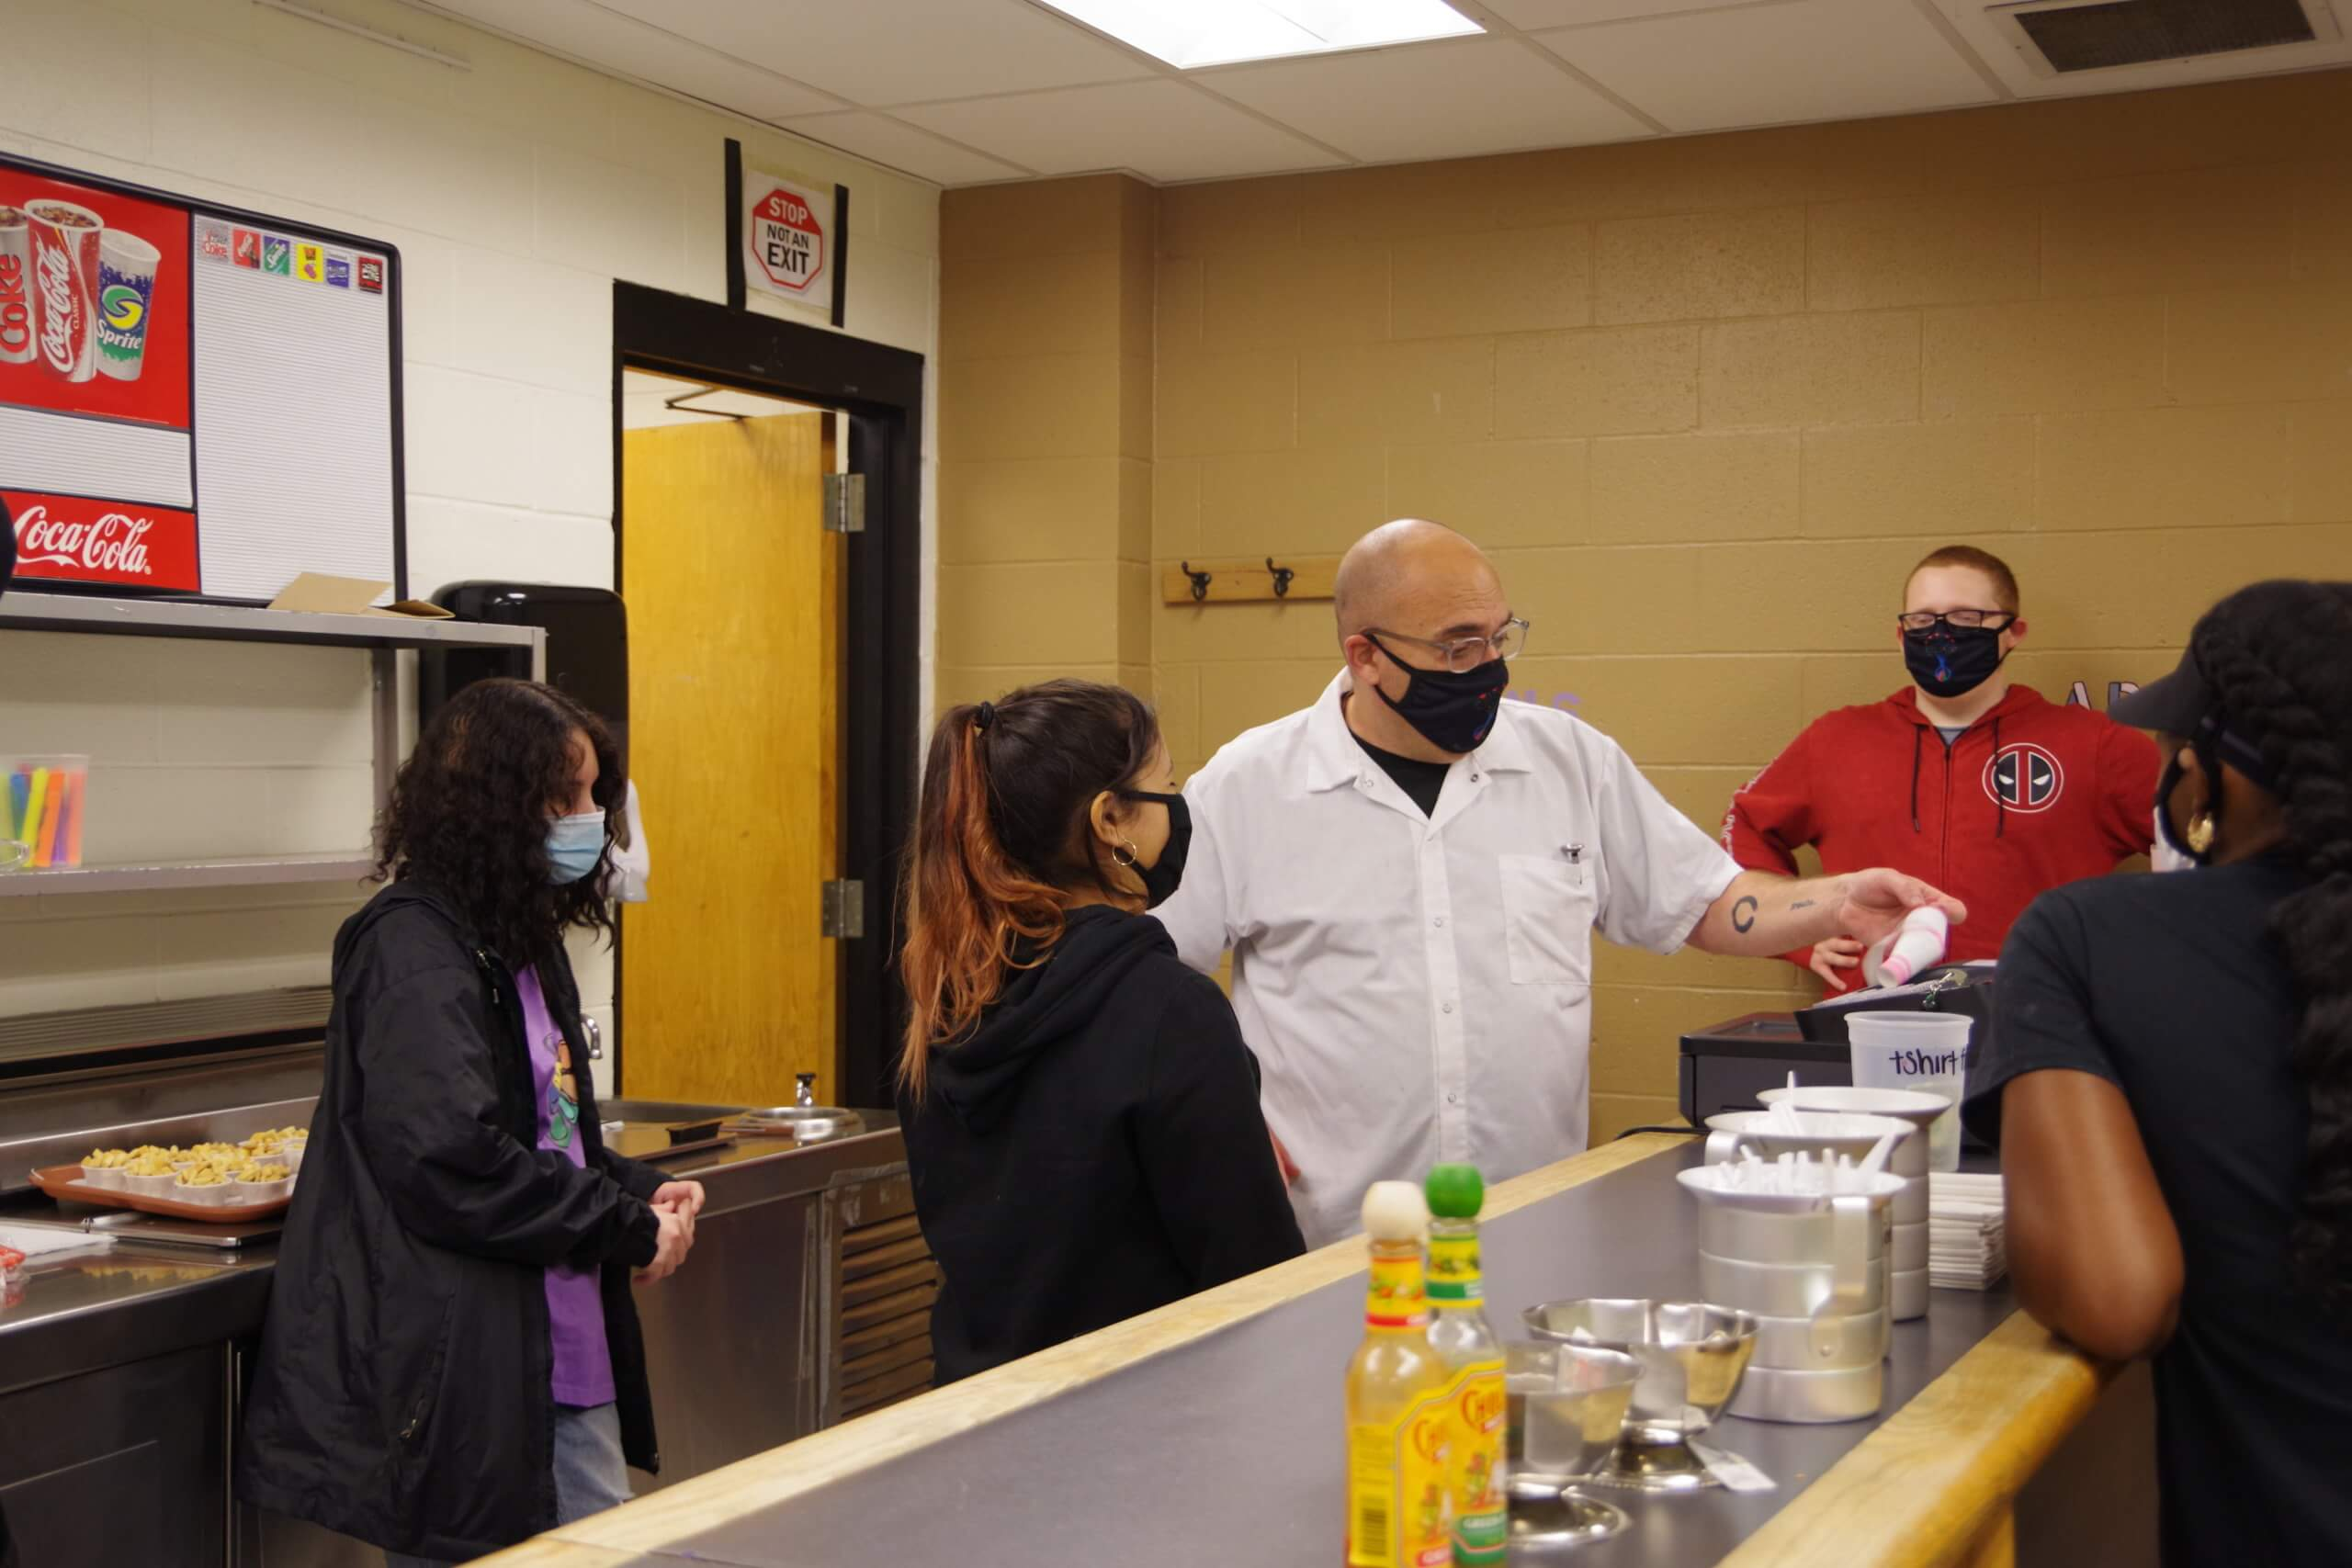 Dean culinary students in shop